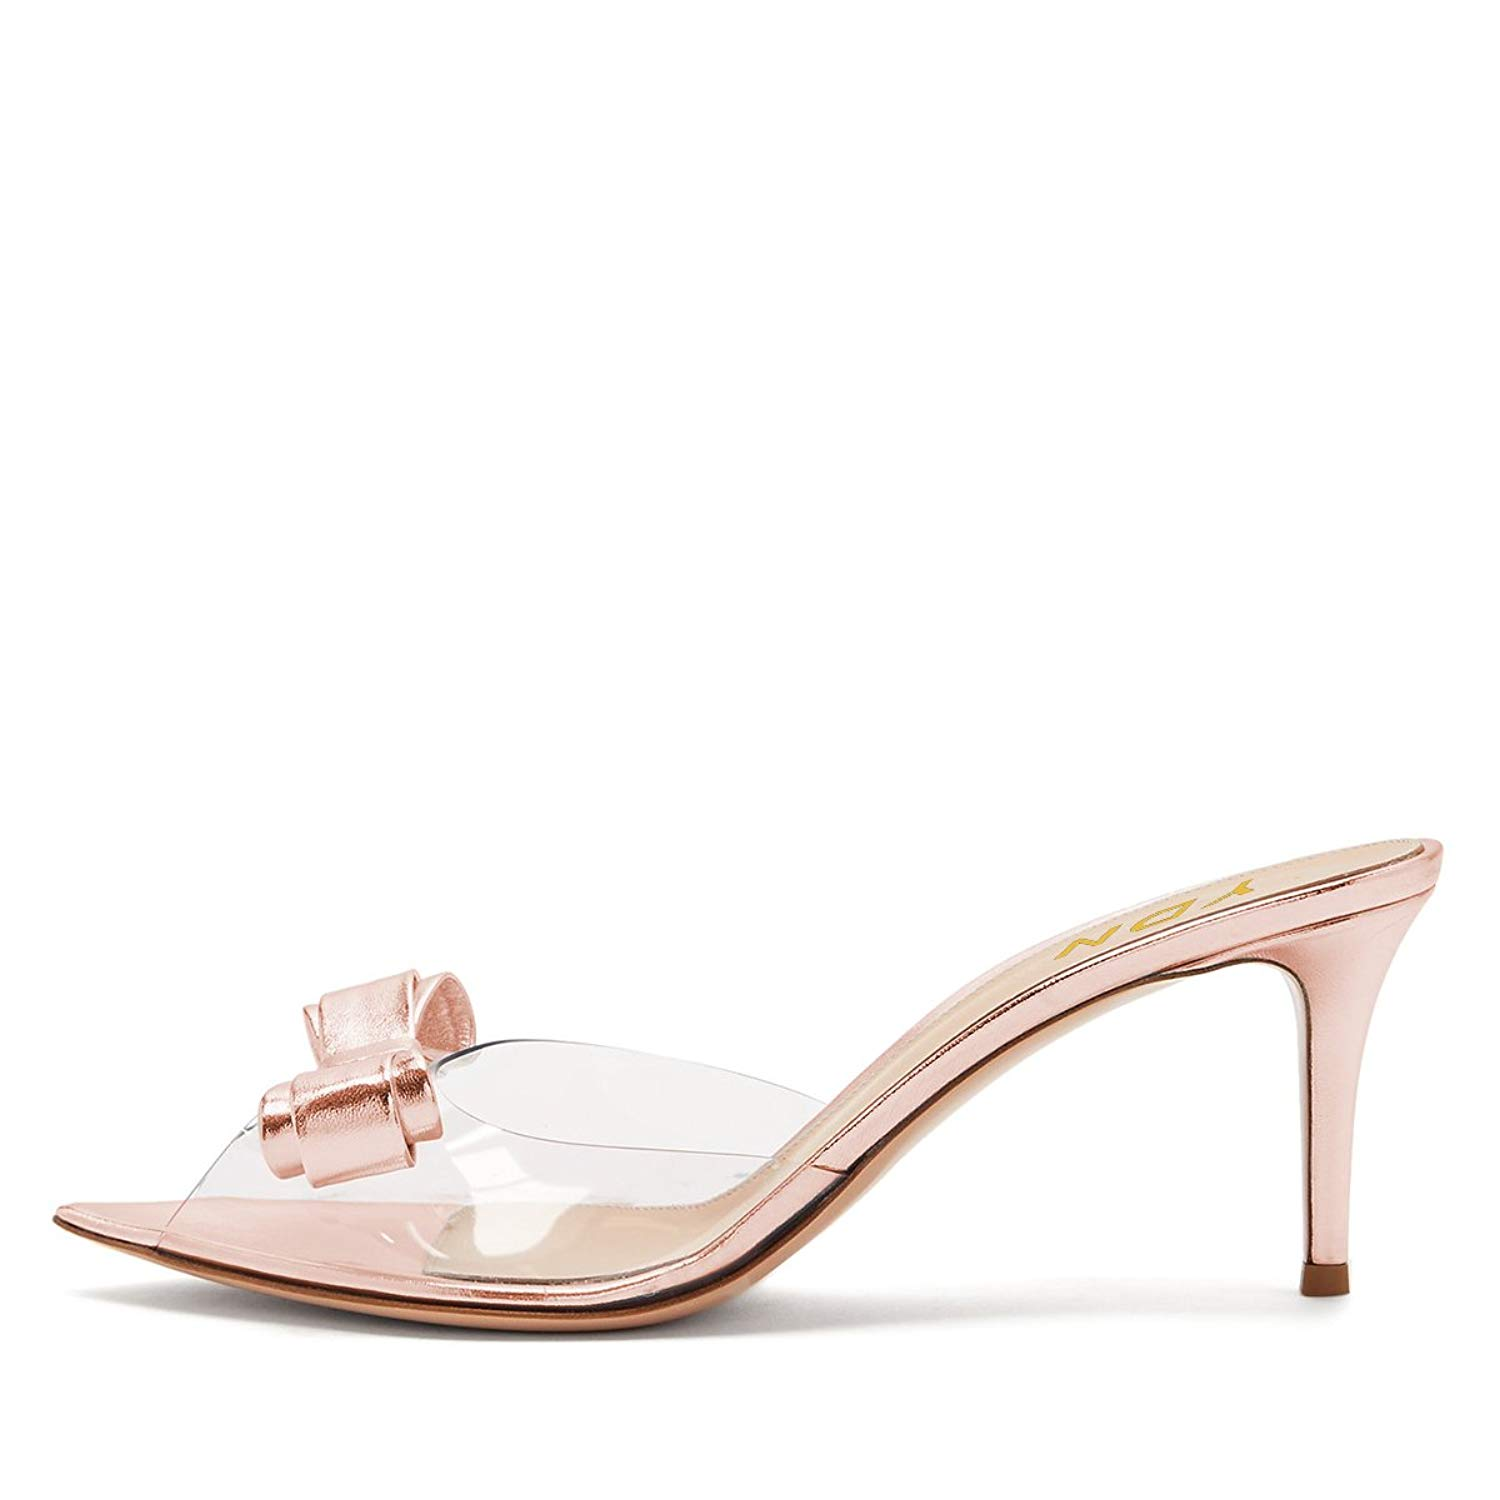 25331b258403 Michelle Parker Cape Robbin Stealthy Lucite Clear PVC Mules Open Toe  Stiletto Heel Pumps Nude. 44.99. null. Get Quotations · YDN Women Peep Toe  High Heel ...